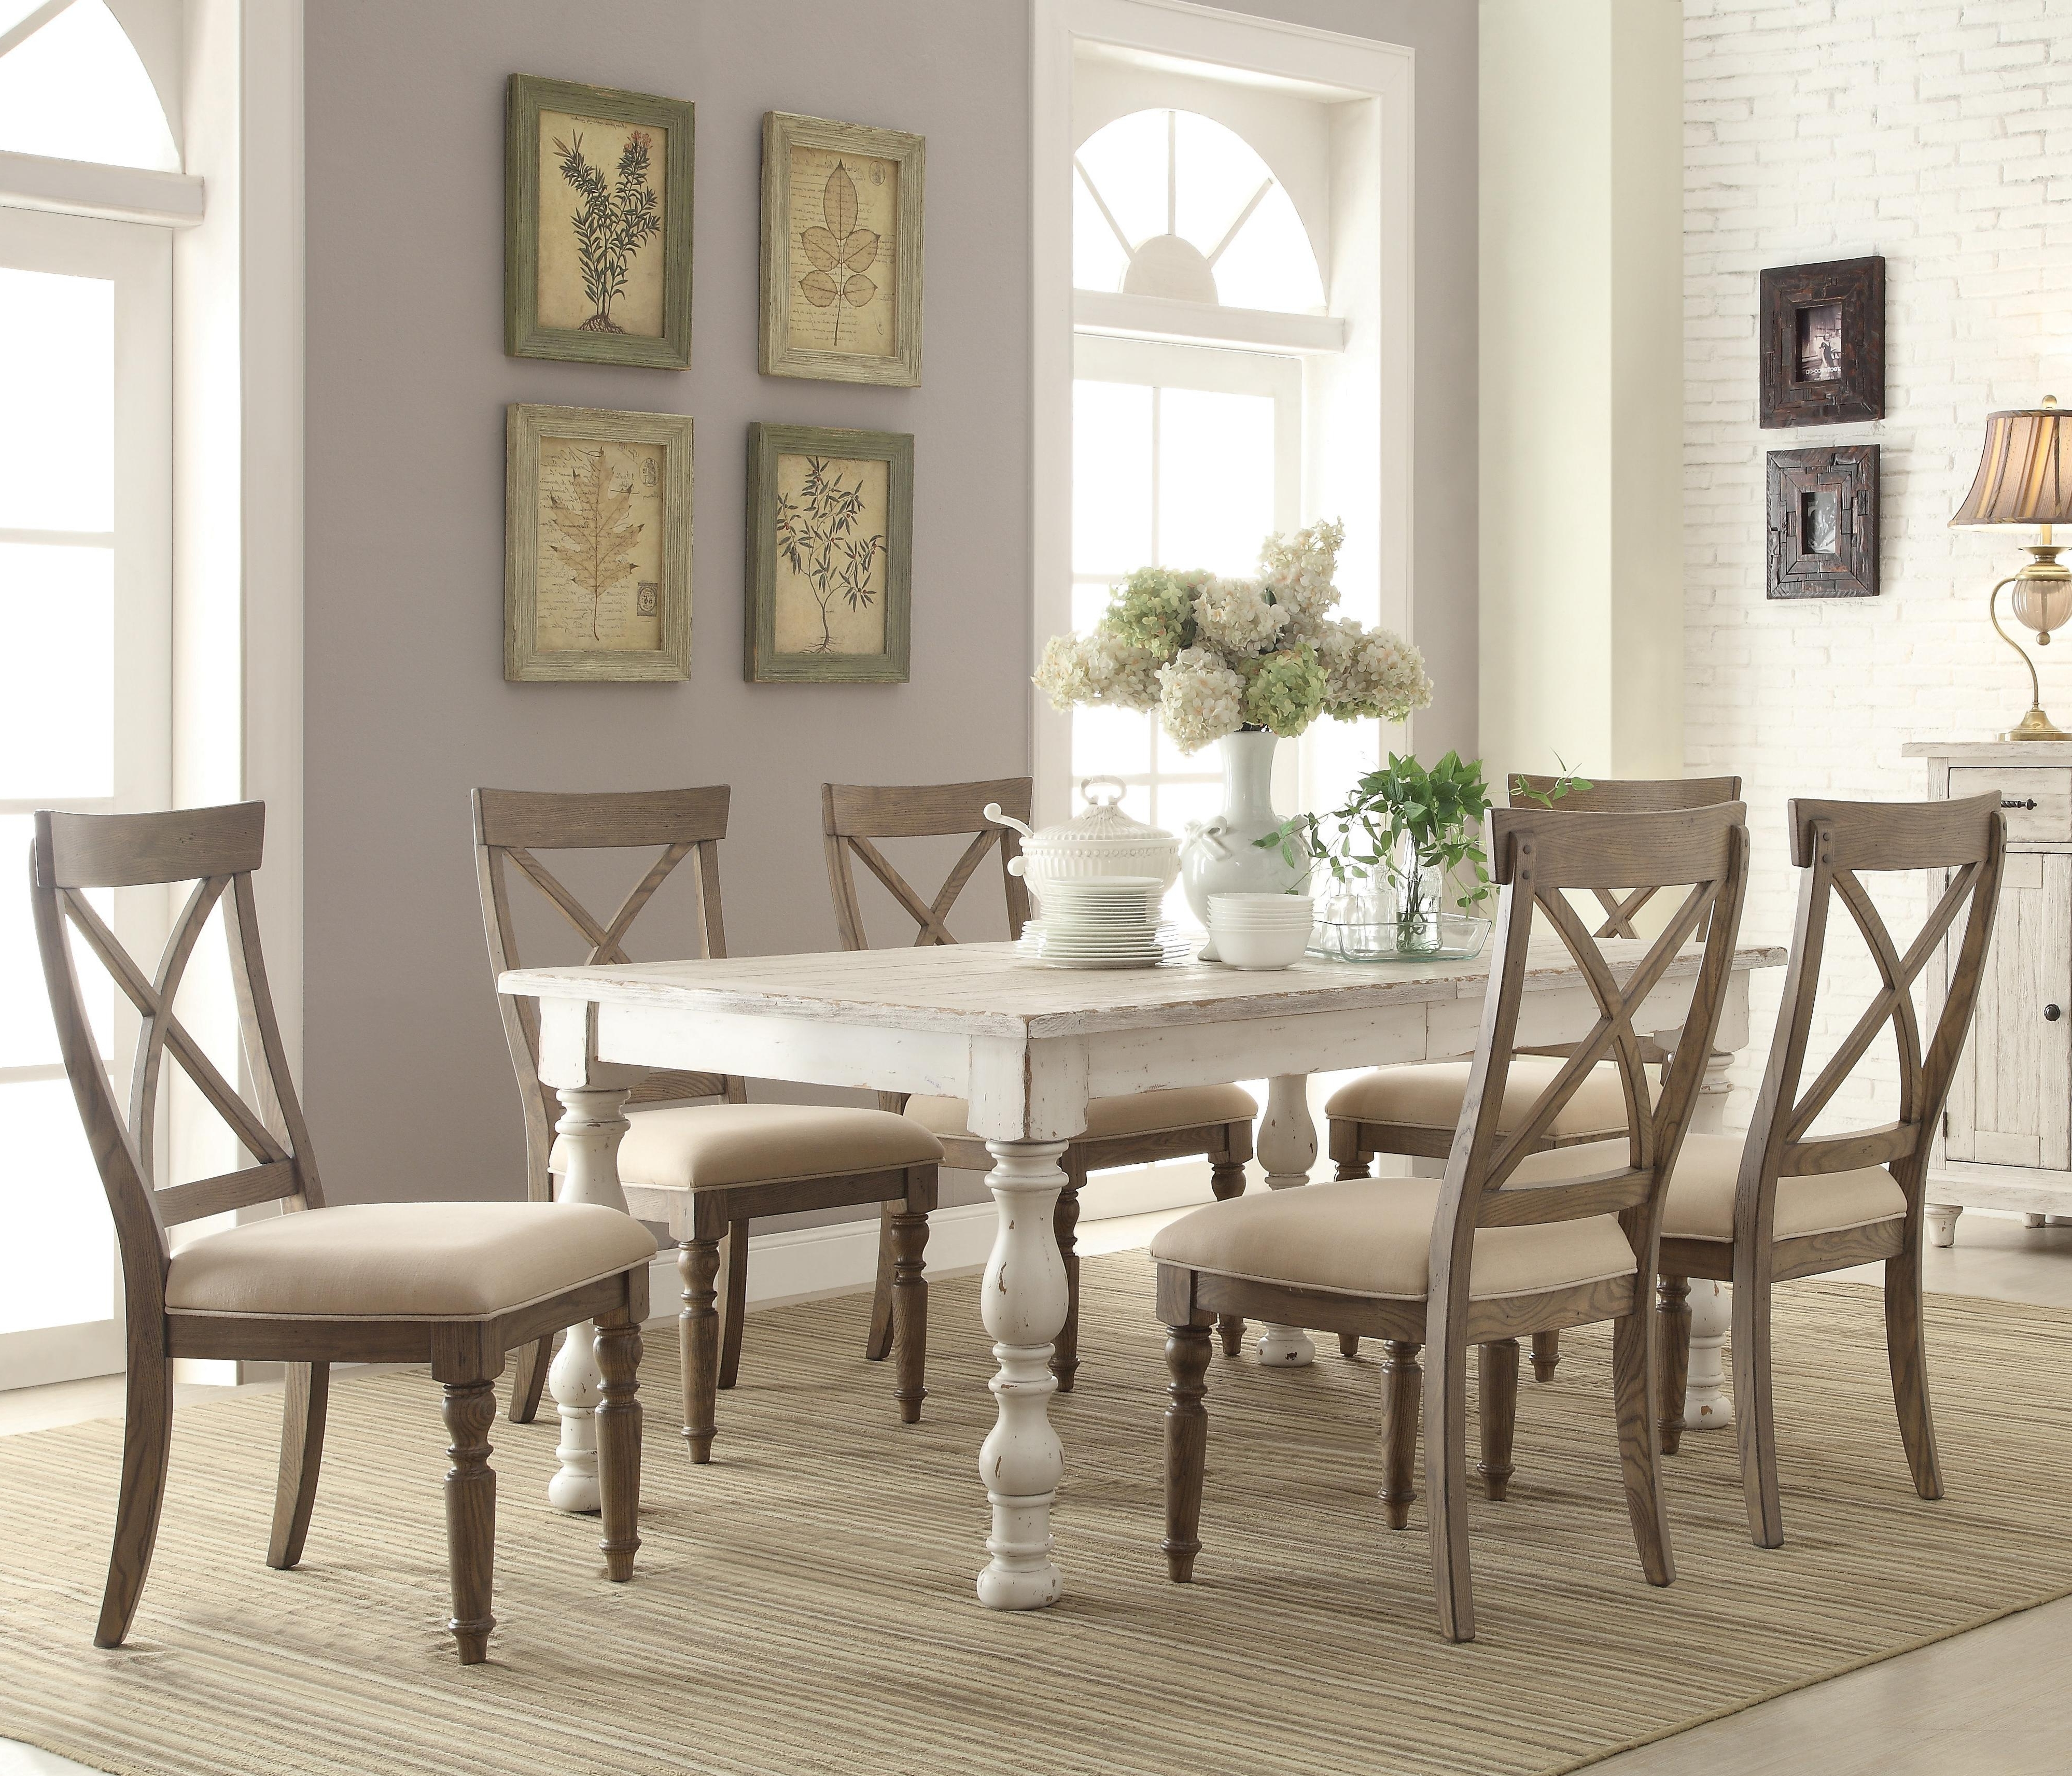 Hudson's For Latest Dining Sets (View 10 of 25)